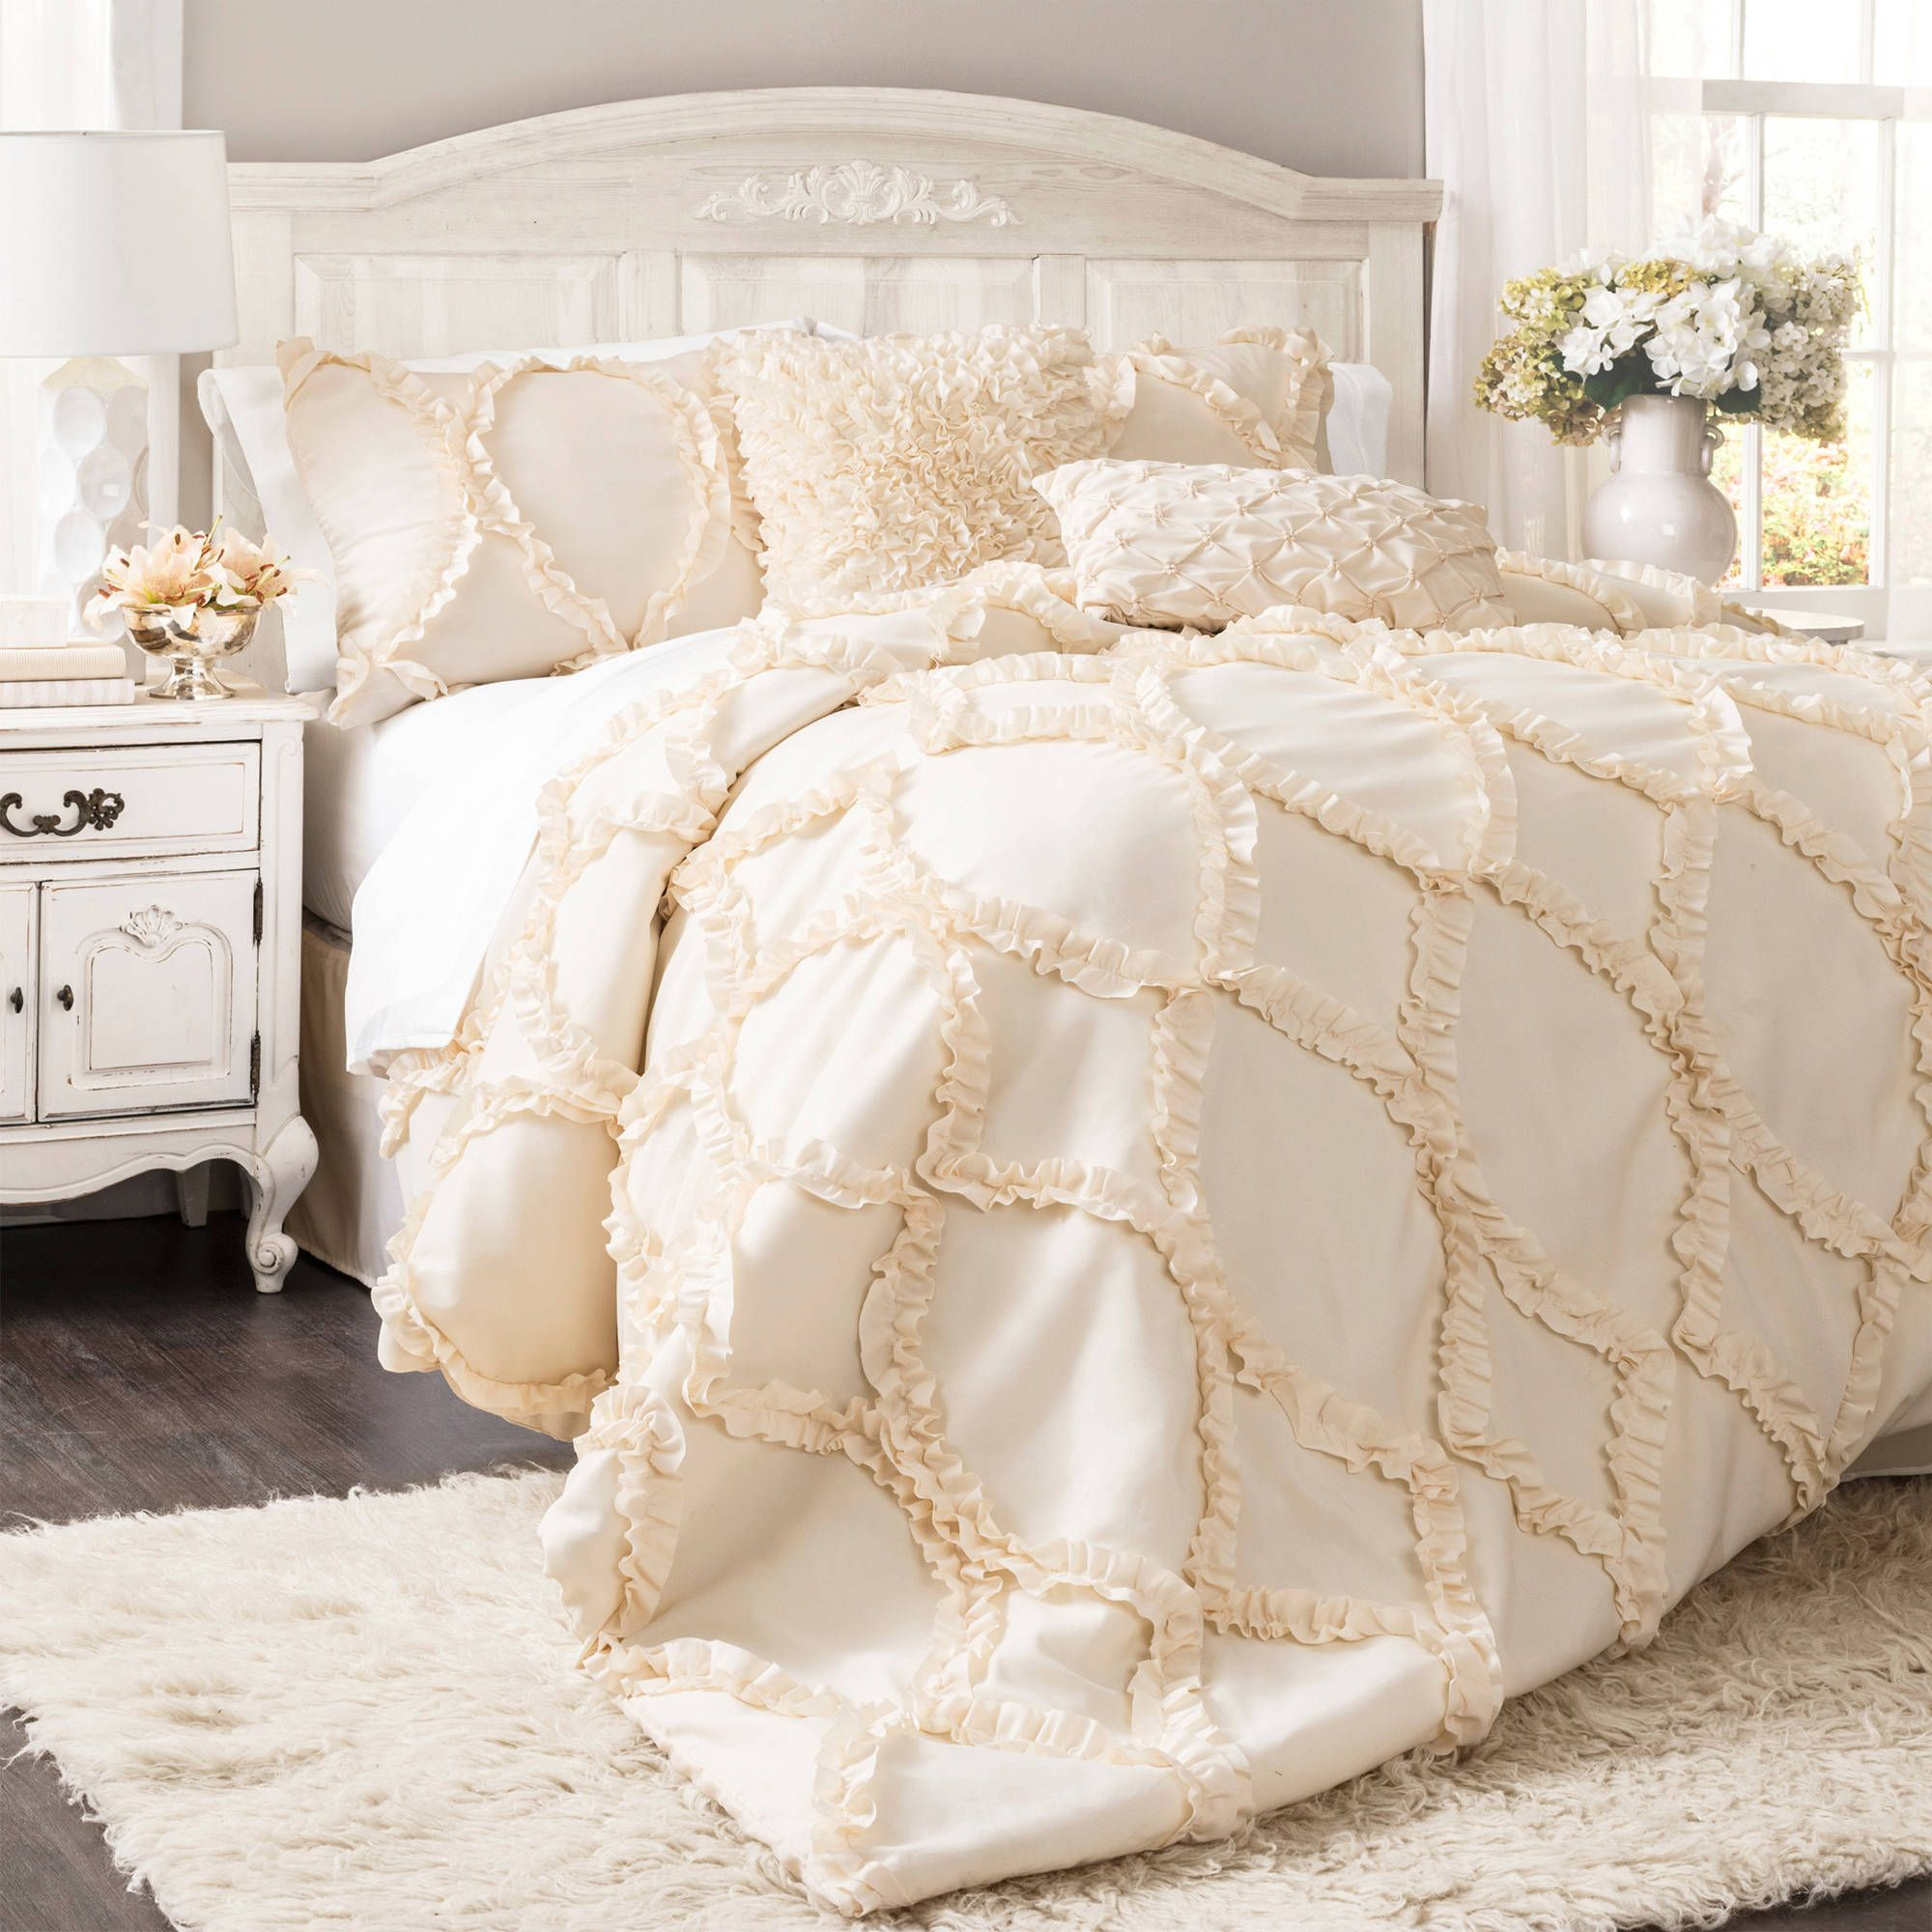 dream master bedroom%0A Give your bedroom a regal  romantic flair with this Lush Decor Avon  threepiece comforter set  Featuring a beautiful white or ivory fabric and  a diamond